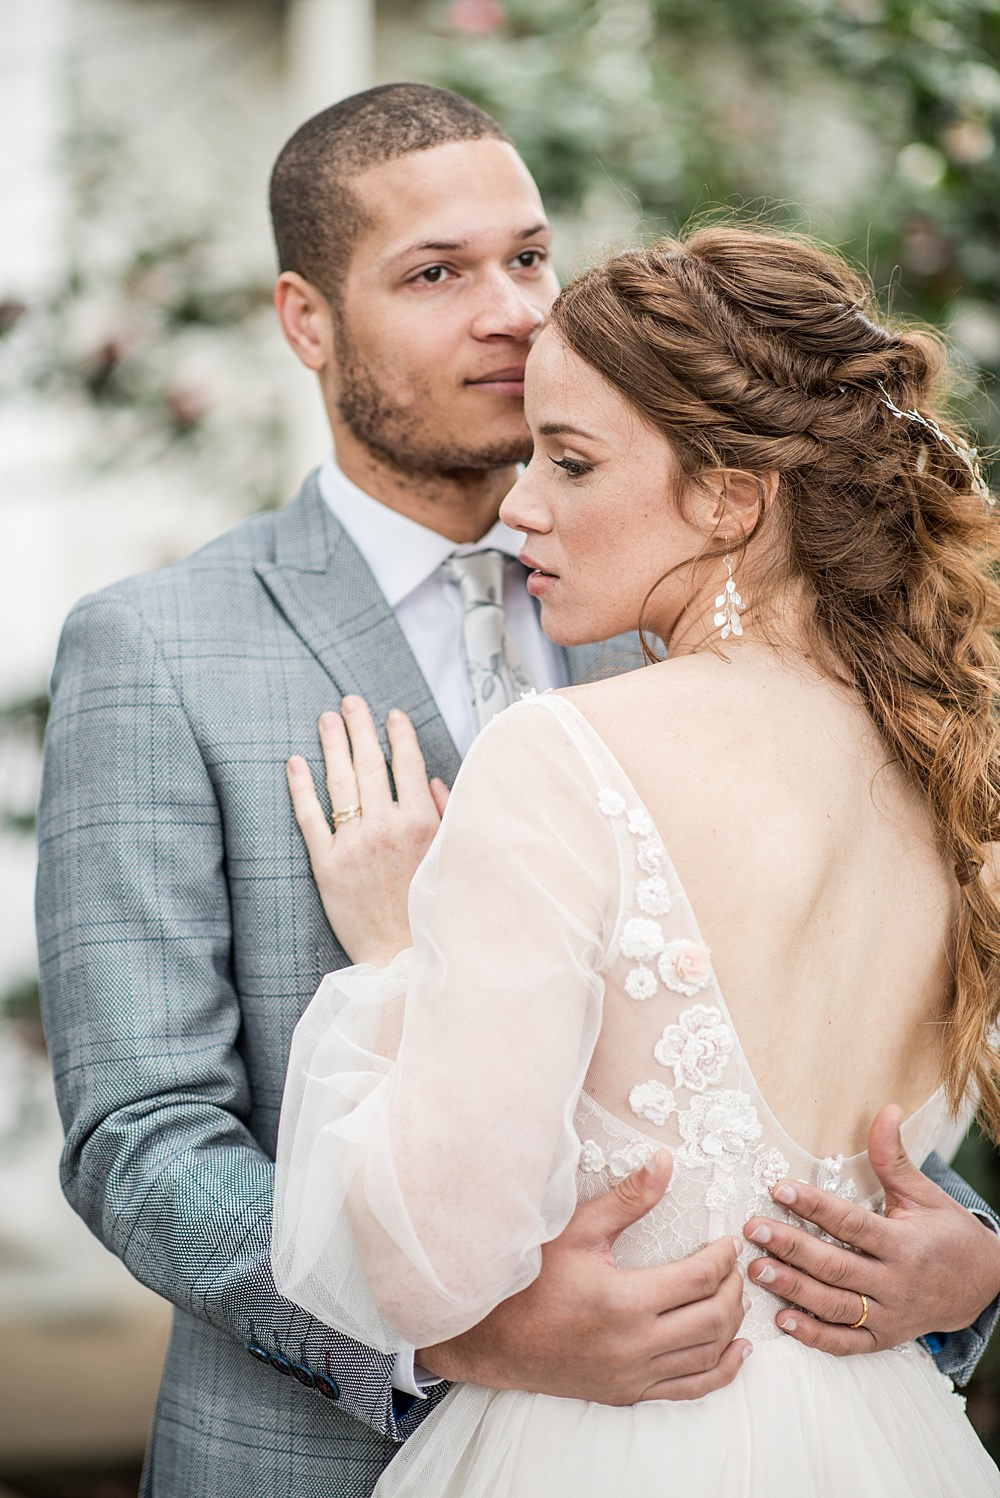 Bride Bridal Hair Style Up Do Half Up Half Down Plaits Braids Waves Peach Gold Wedding Ideas Jane Beadnell Photography